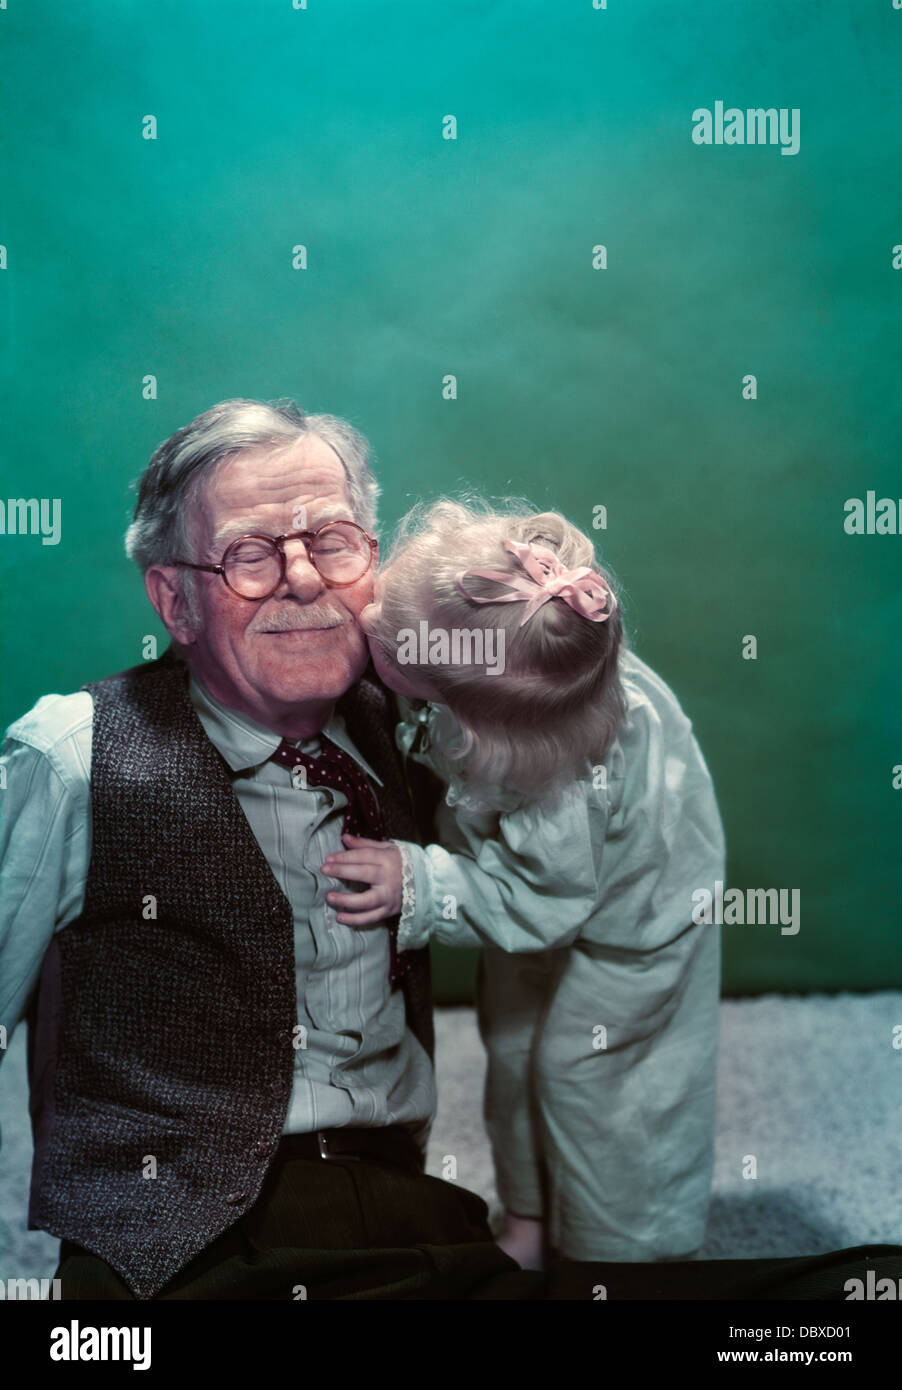 1940s 1950s GRANDDAUGHTER KISSING SMILING GRANDFATHER GOODNIGHT ON CHEEK - Stock Image